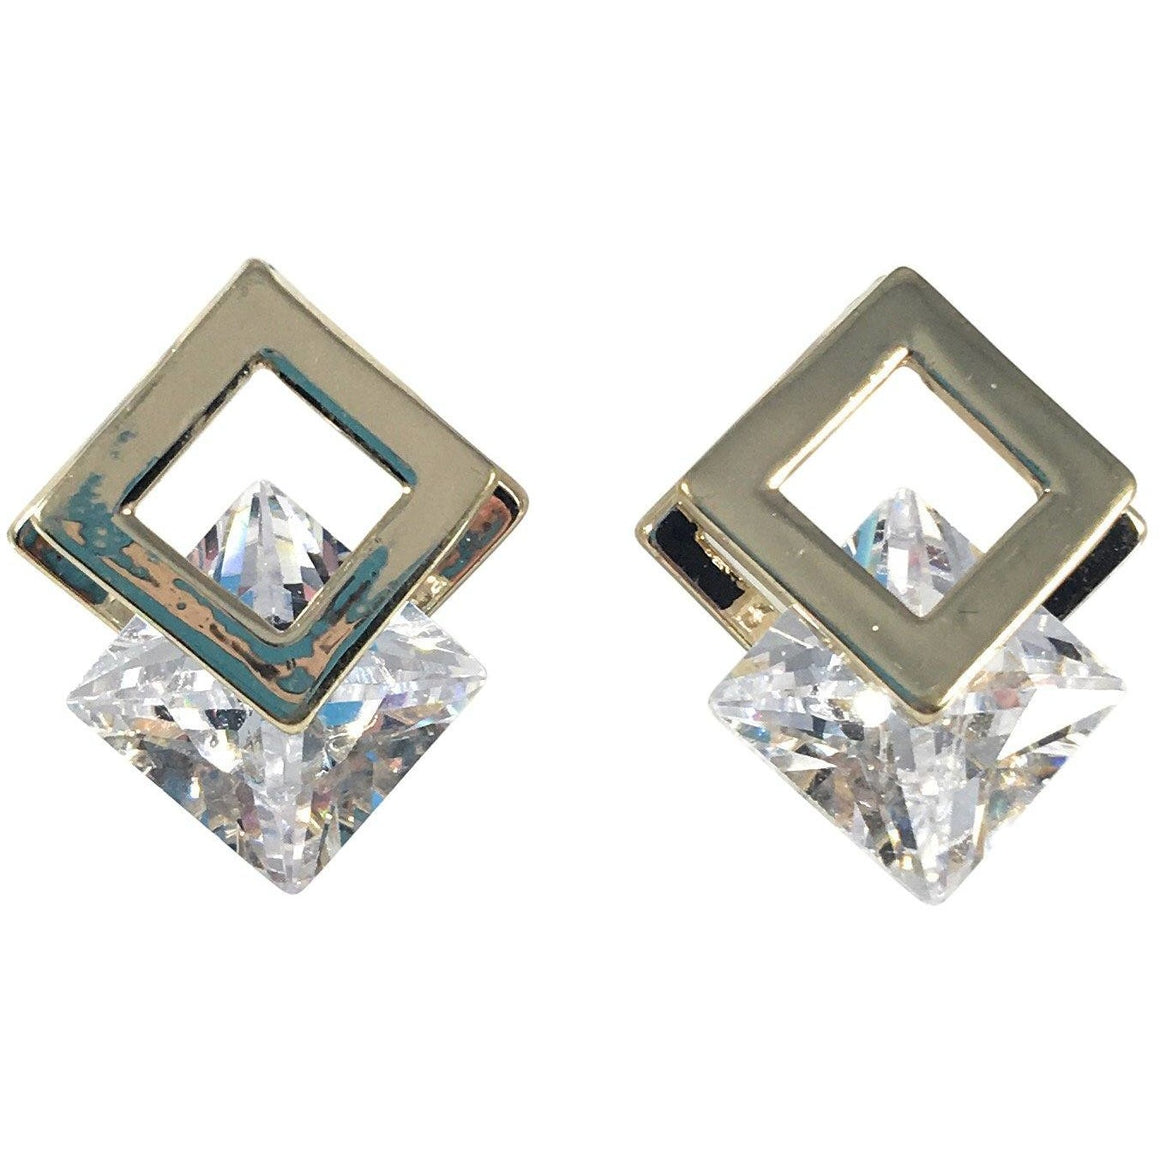 Cubic Zirconia Earrings 20mm x 15mm - Beads and Dangles